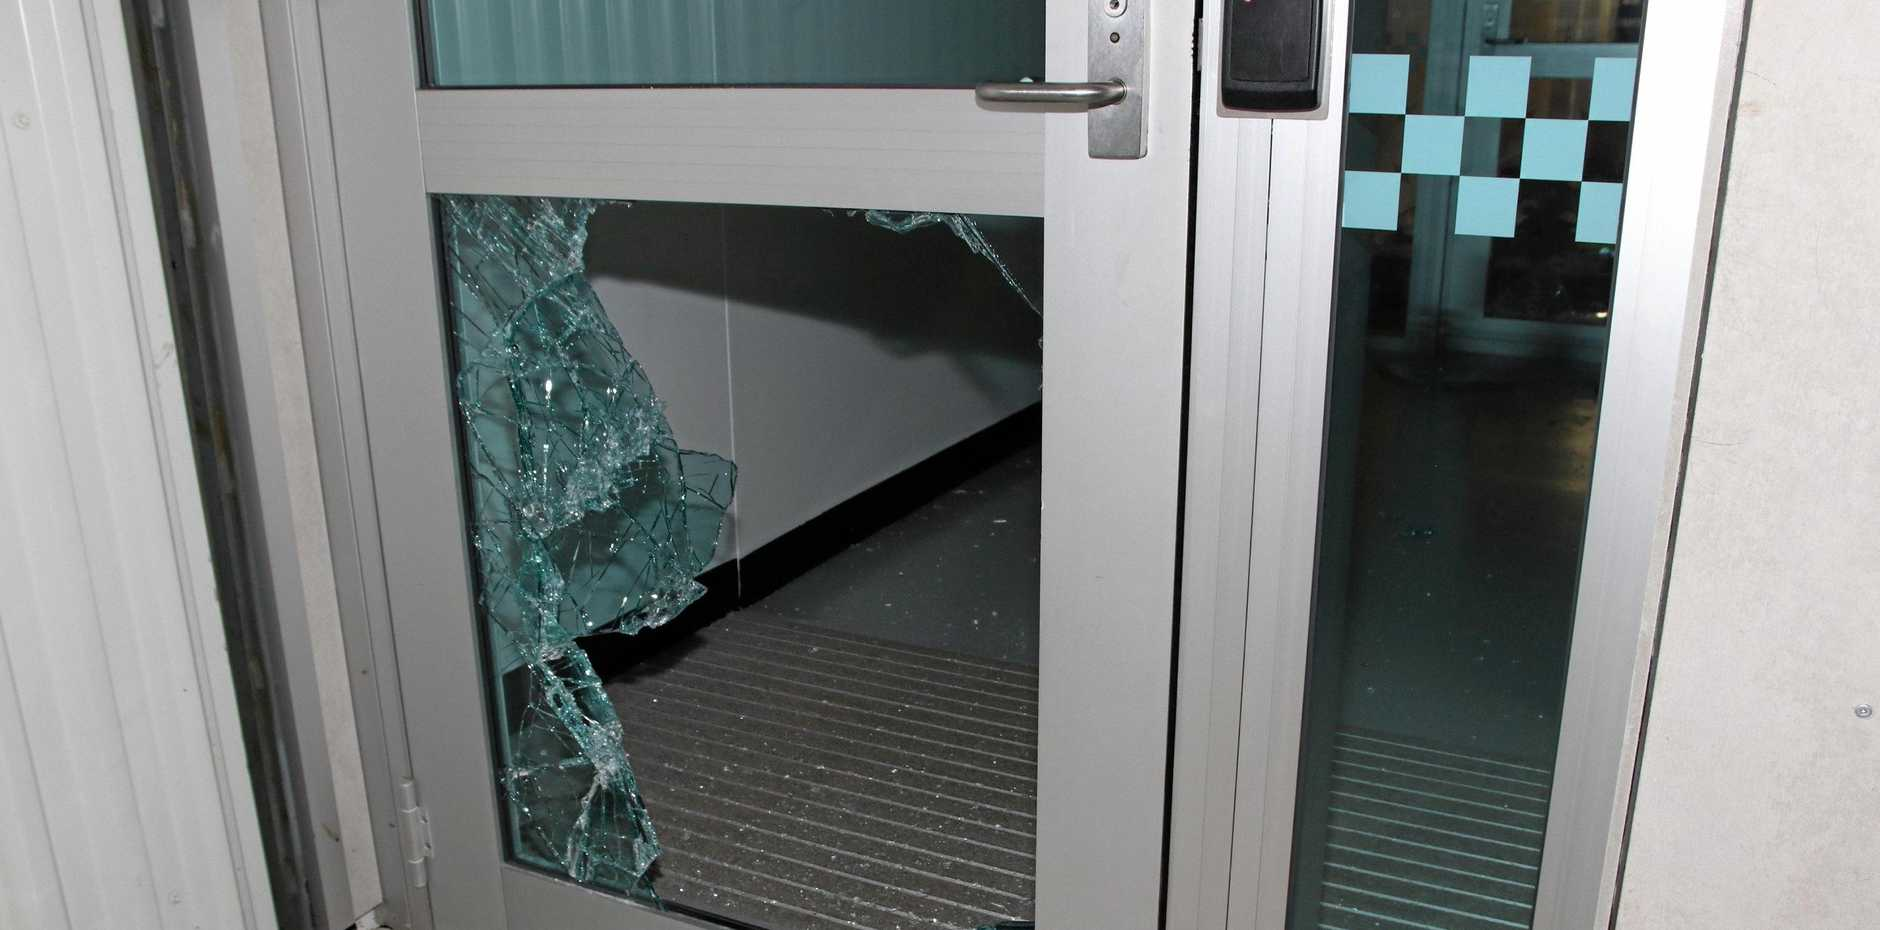 The back door at Bowen Police station after a 35-year-old man allegedly smashed his way in.